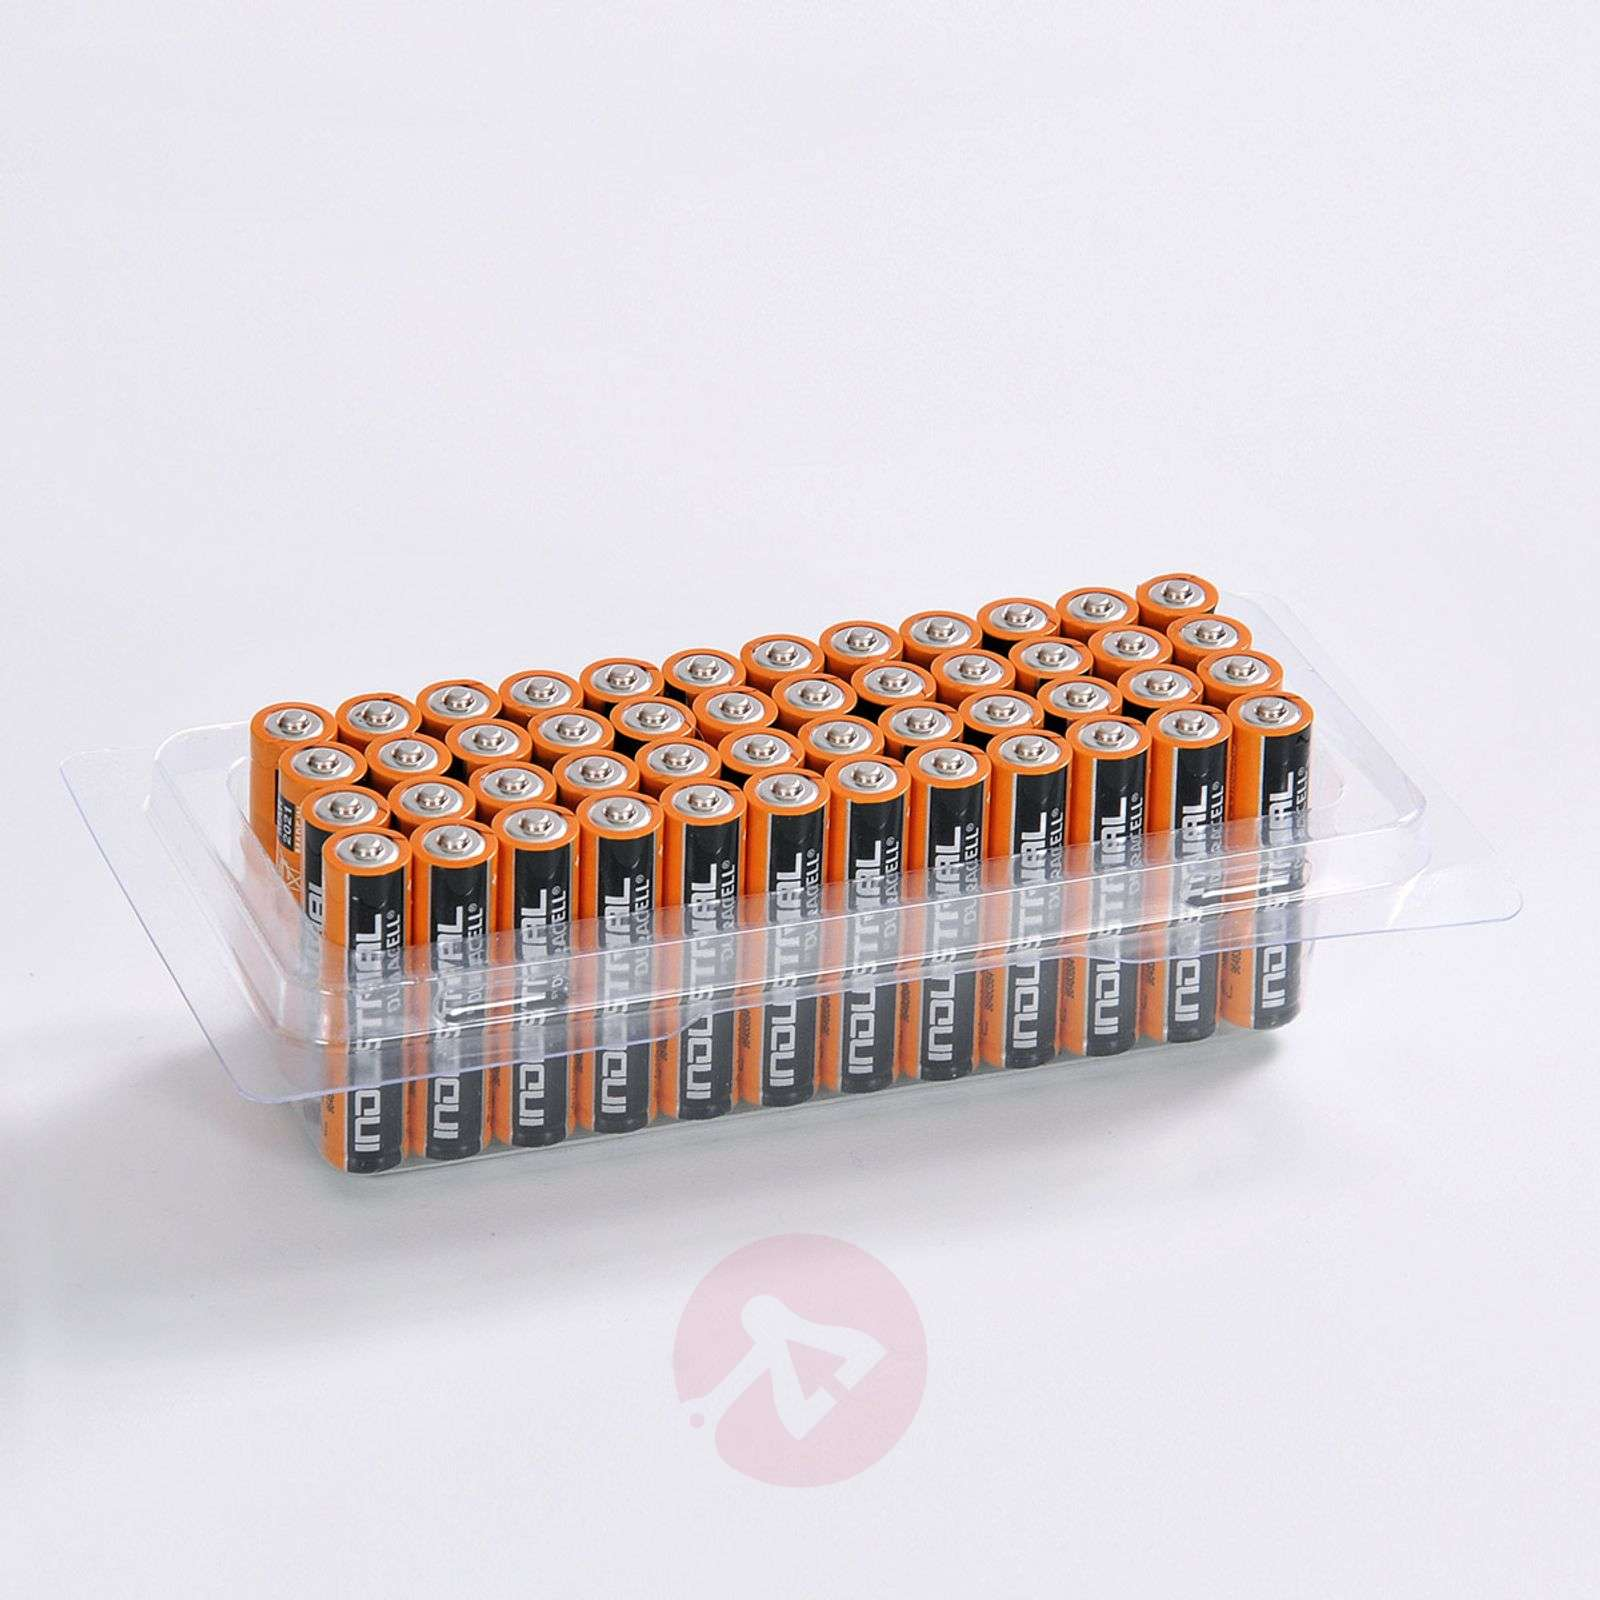 Box of 48 Duracell Industrial Micro AAA batteries-9018032-01